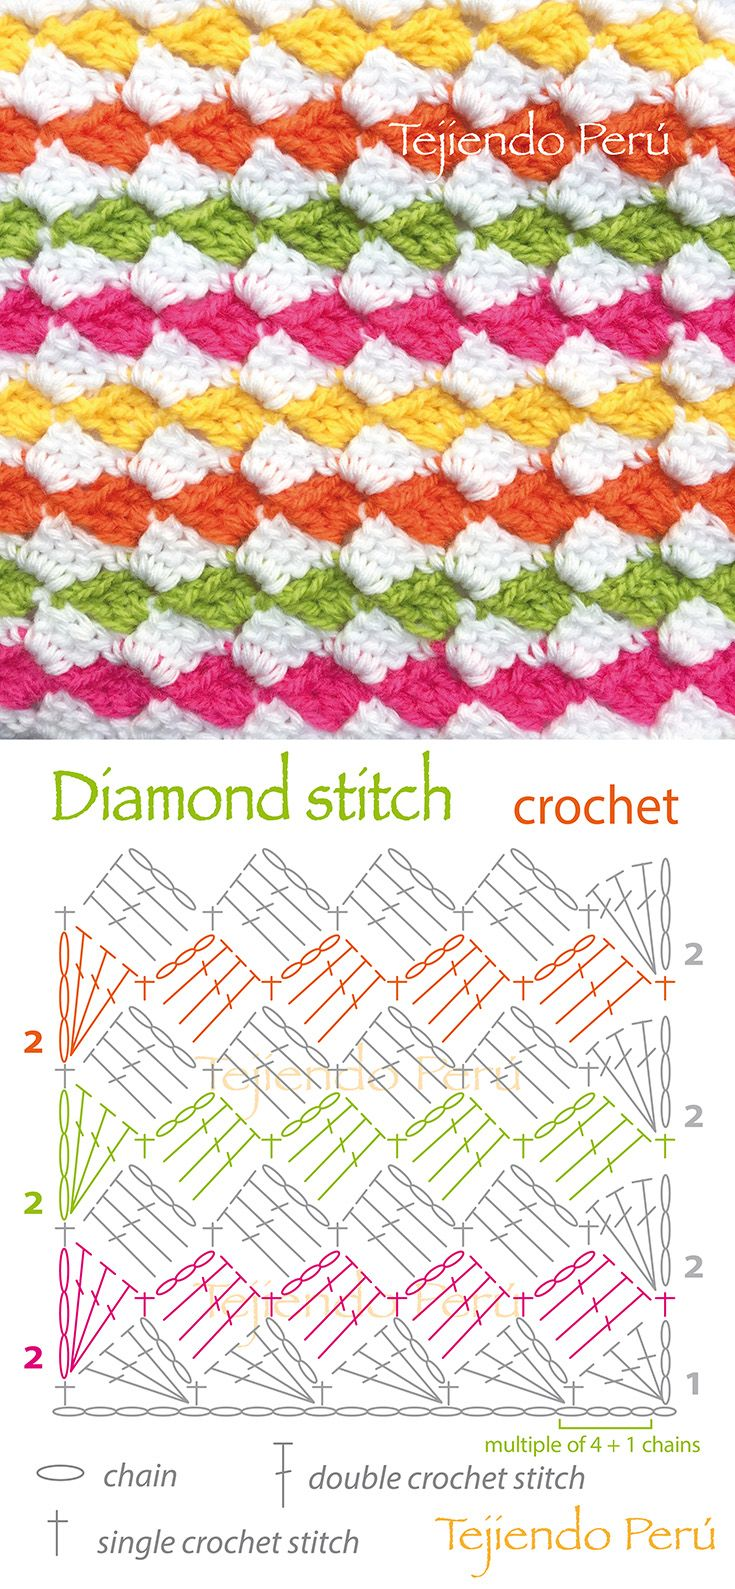 Crochet: diamond stitch pattern!